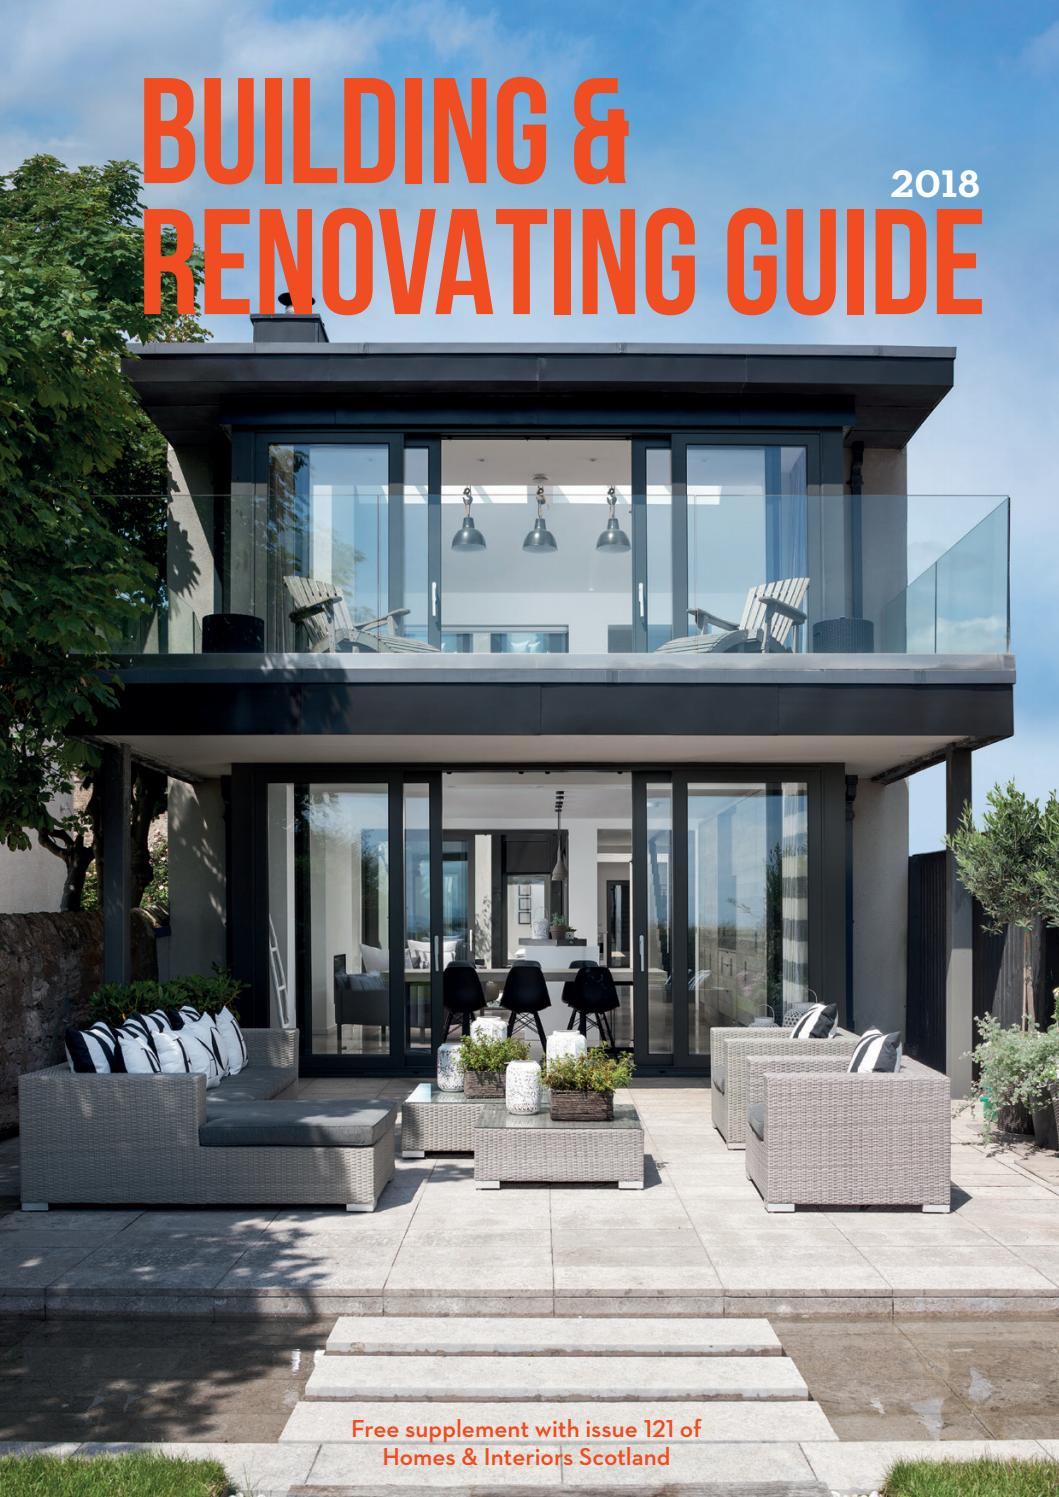 Building & Renovating Guide 2018 by Peebles Media Group - issuu